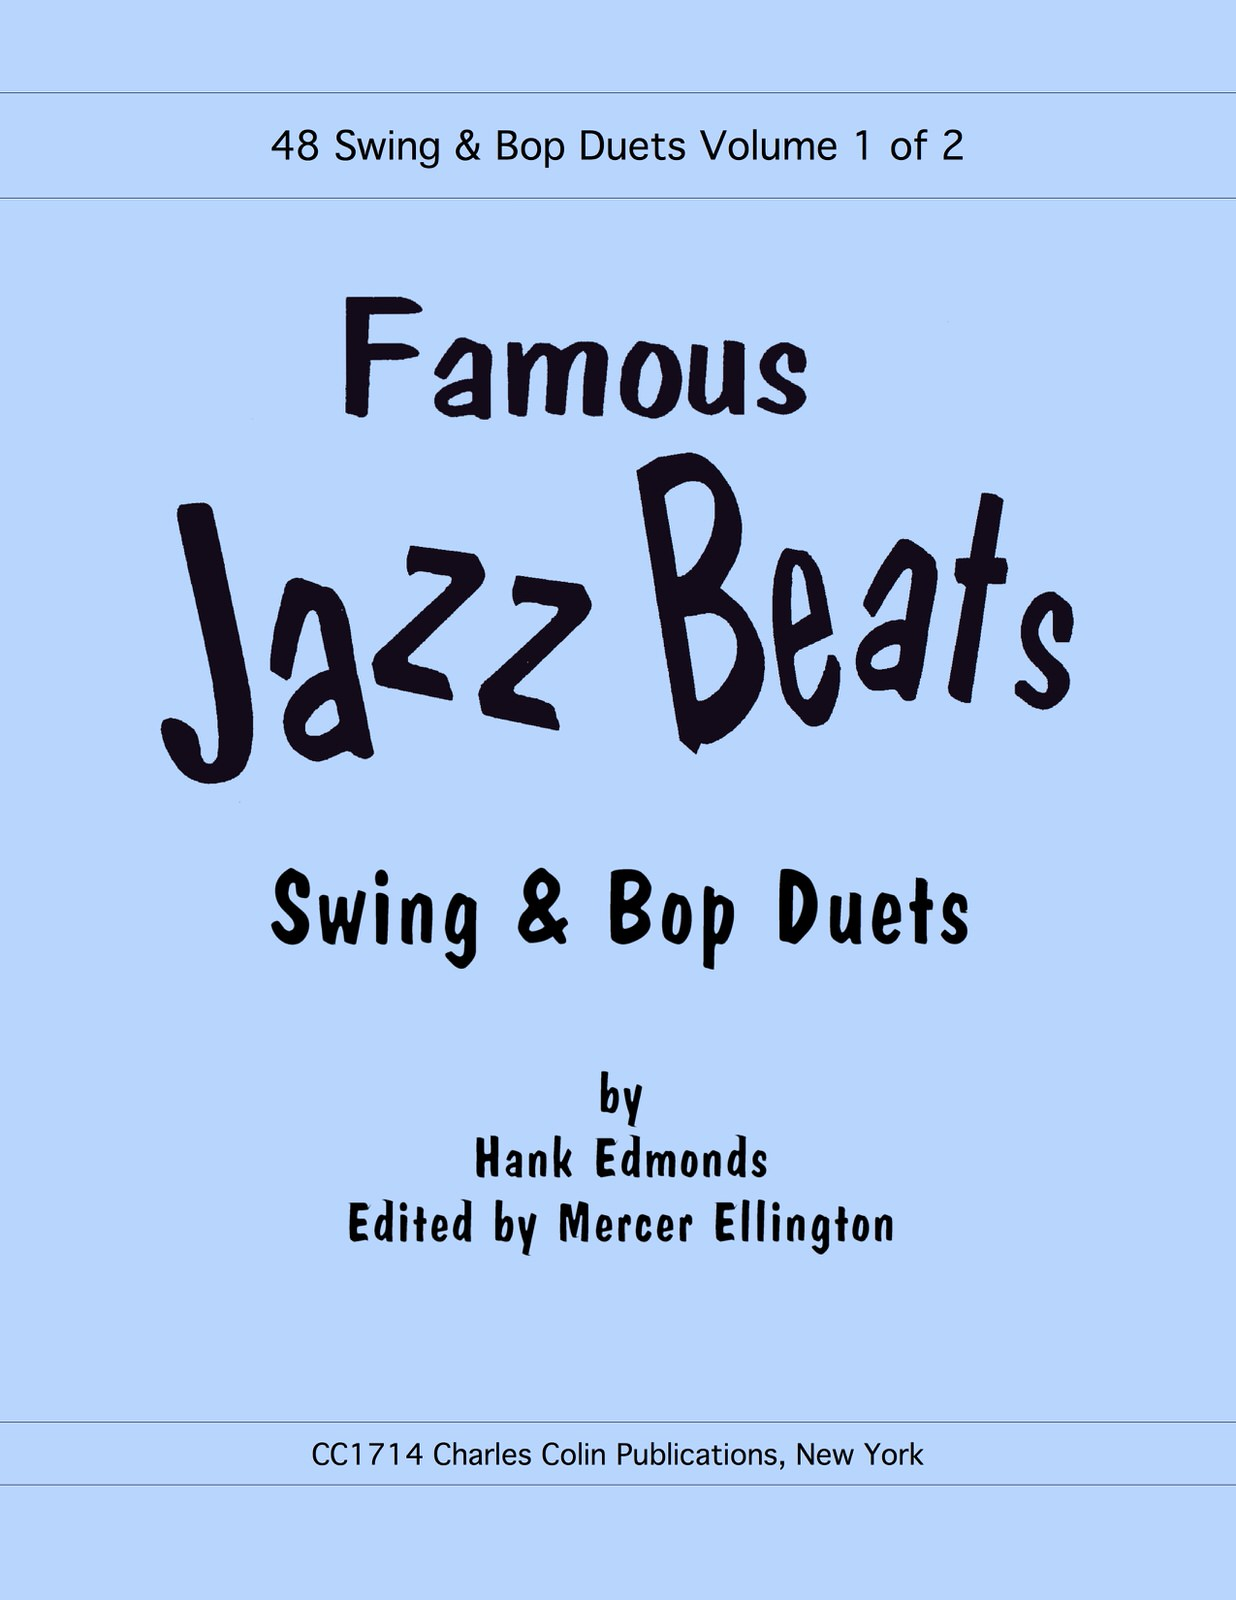 Edmonds, Hank Famous Jazz Beats Vol.1-p01